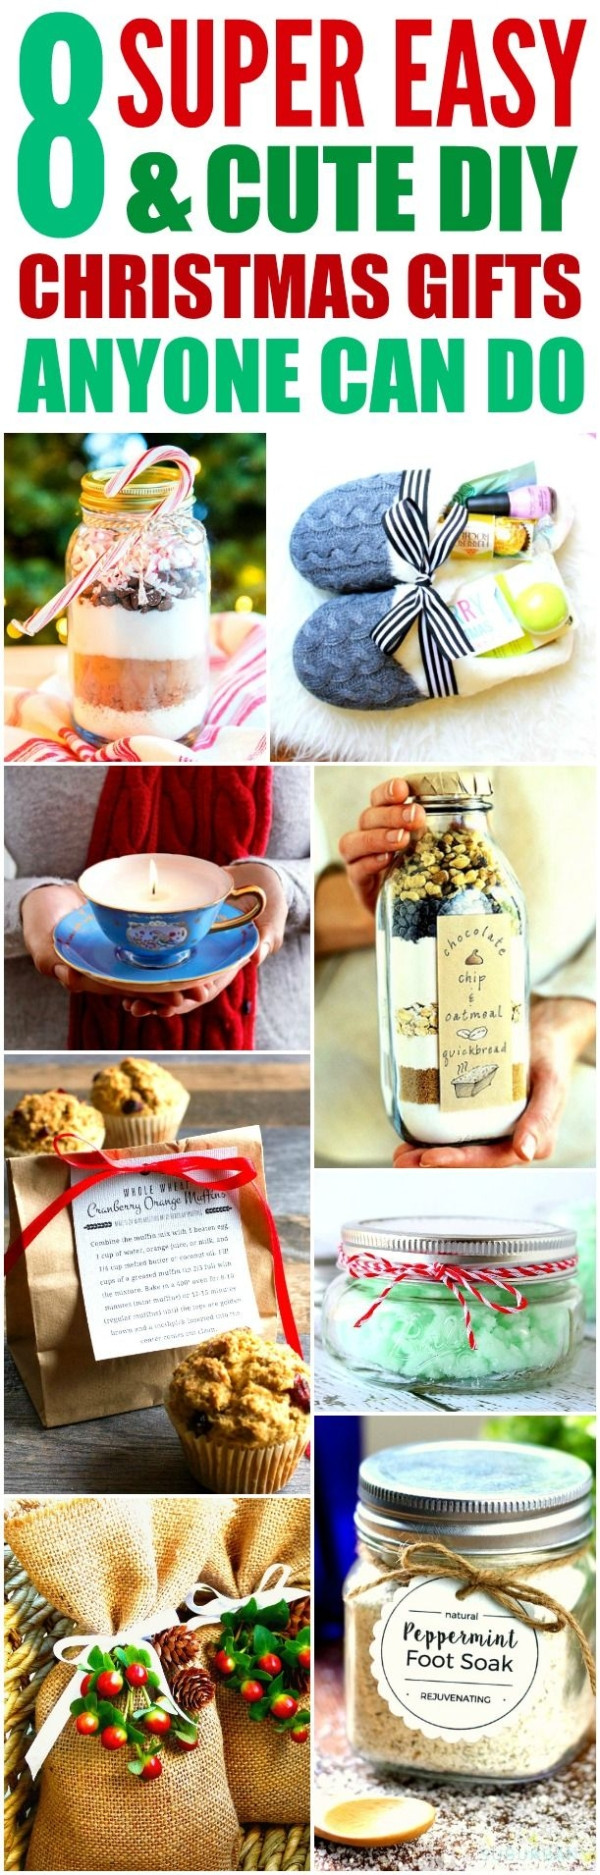 Best ideas about DIY Christmas Gifts For Family . Save or Pin These 8 easy and cute DIY Christmas ts are THE BEST I Now.